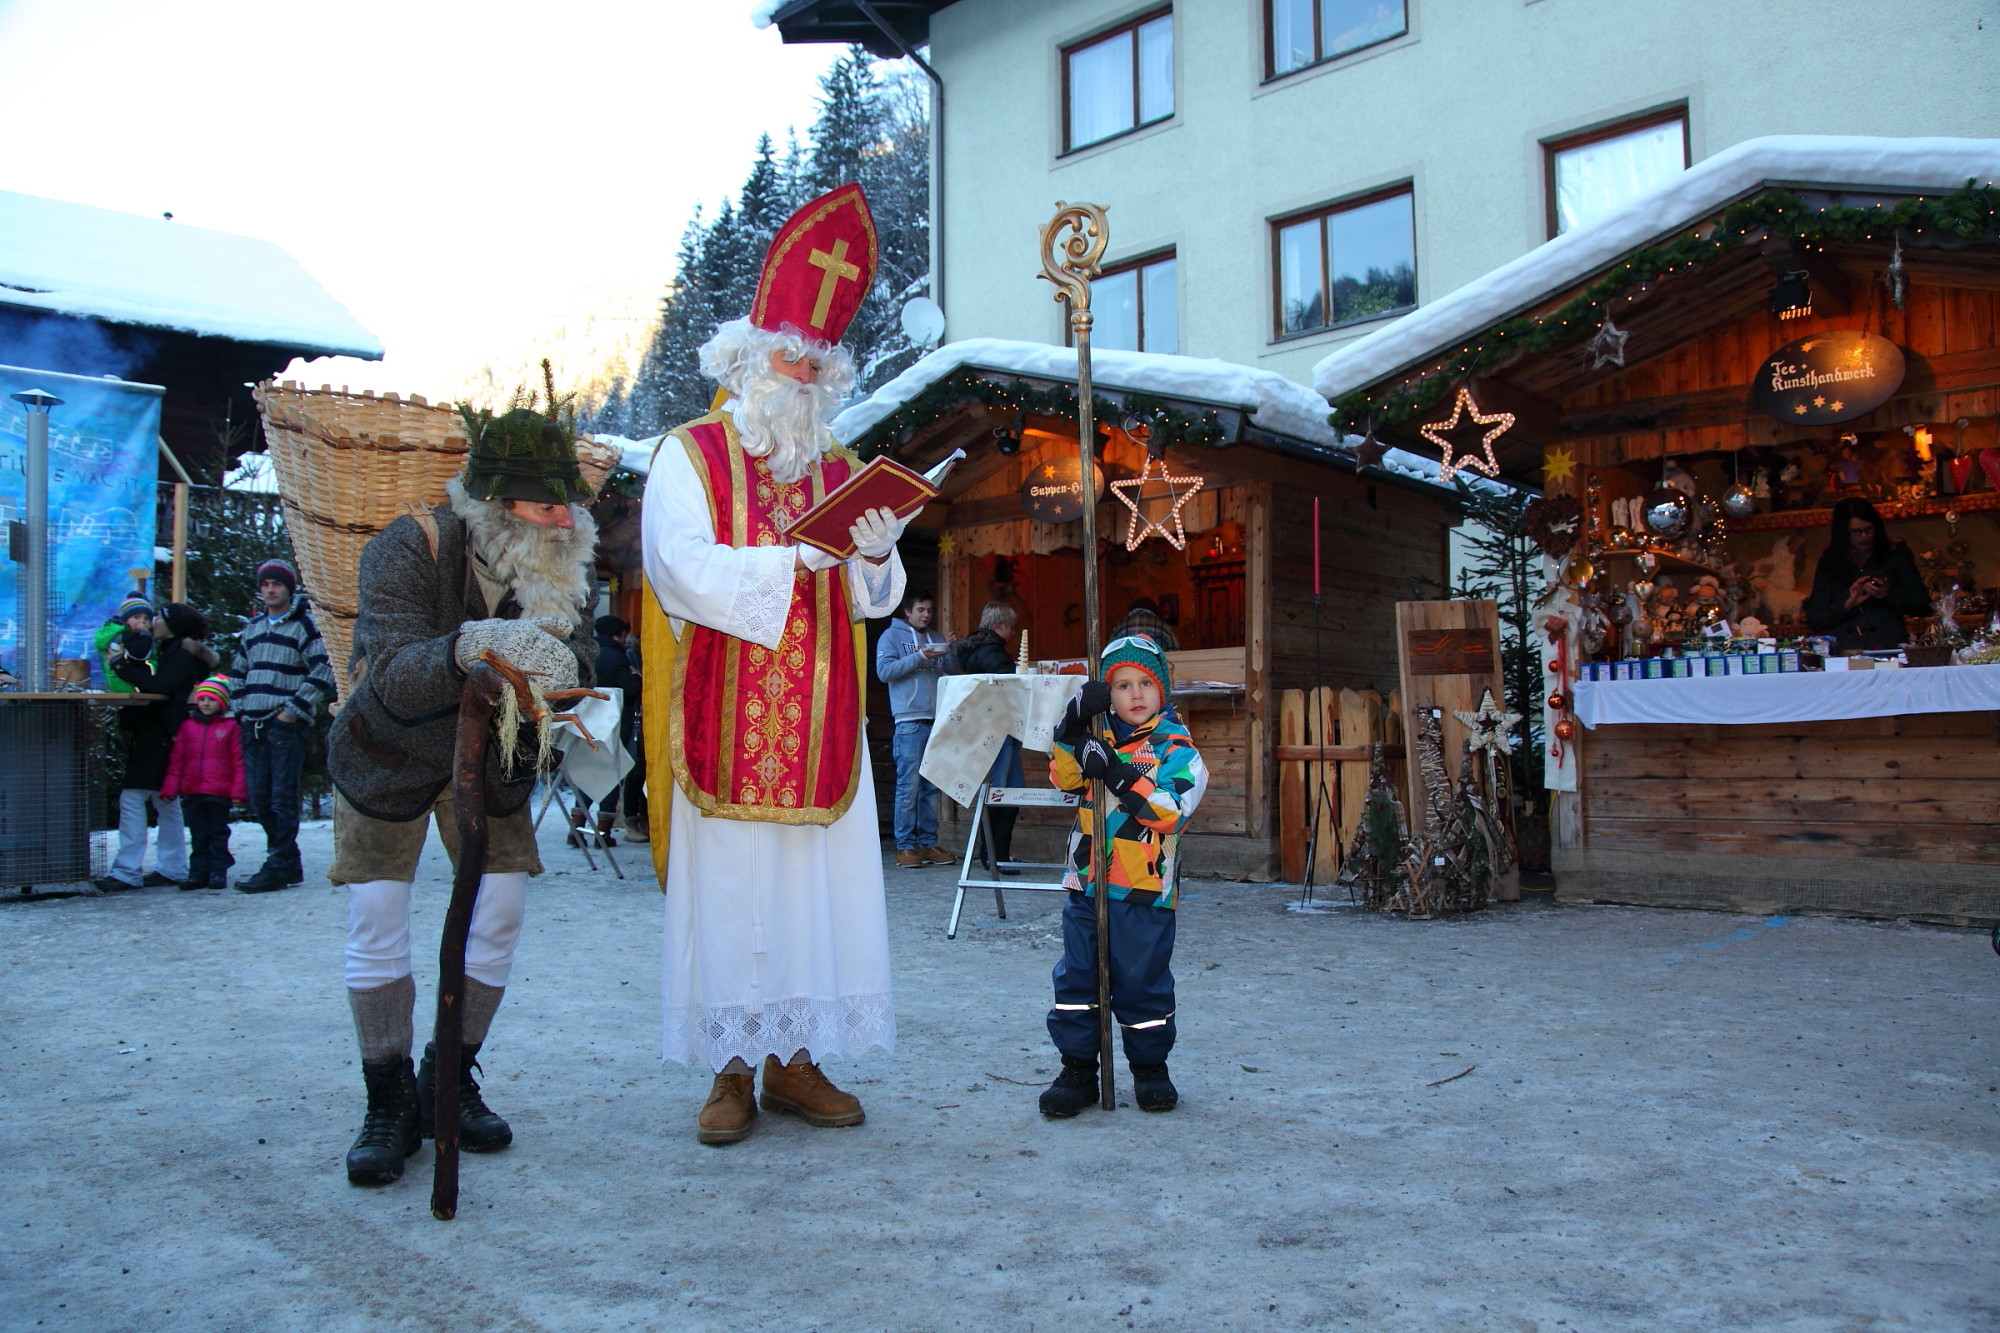 St. Nick at the Advent marktet in Grossarl